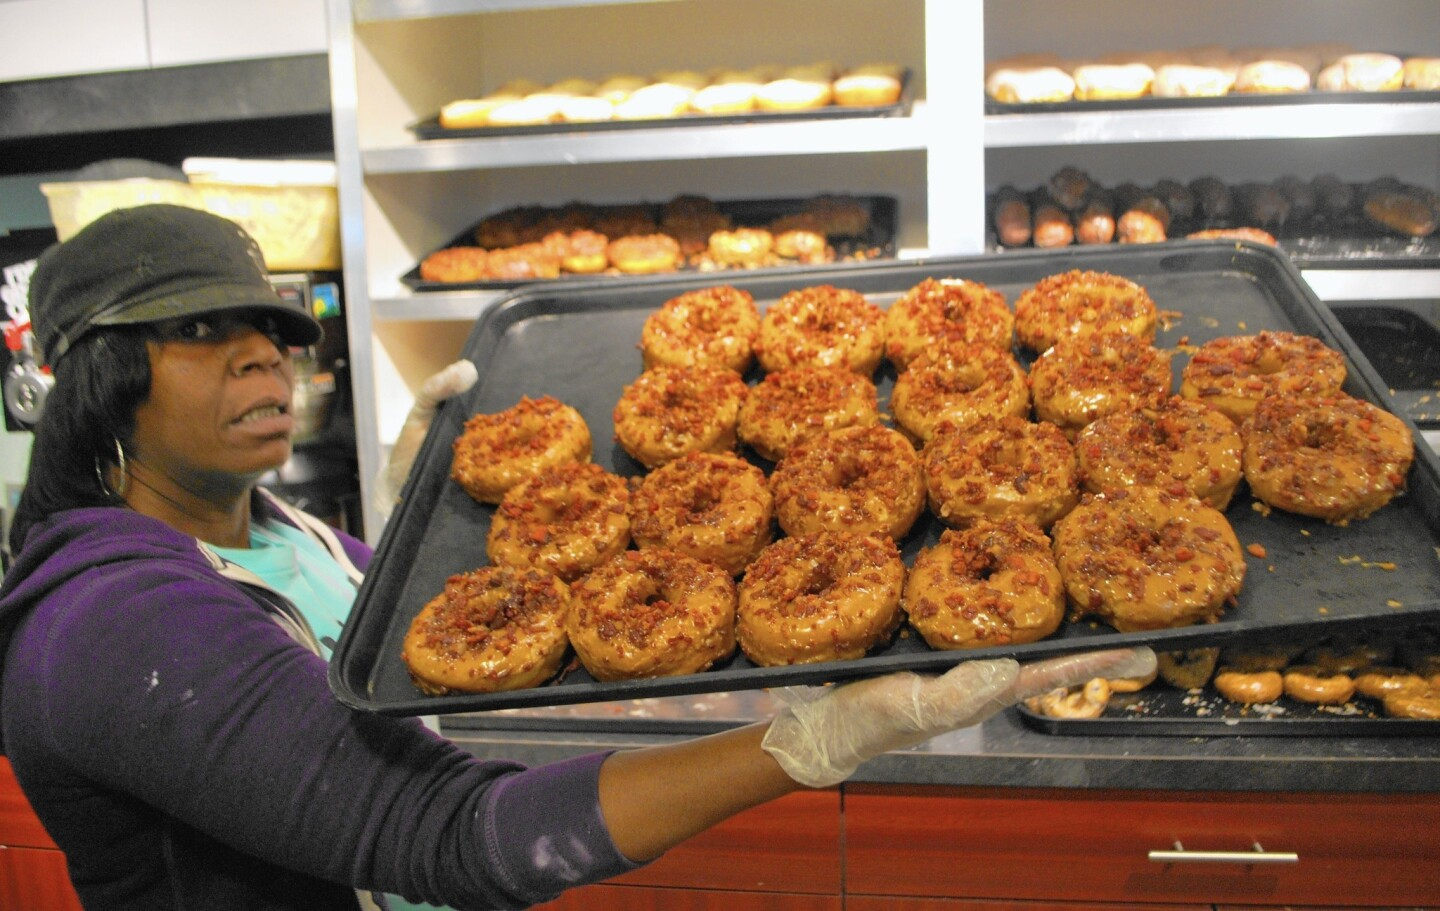 Bacon and maple syrup doughnuts at Holtman's Donuts in Cincinnati.